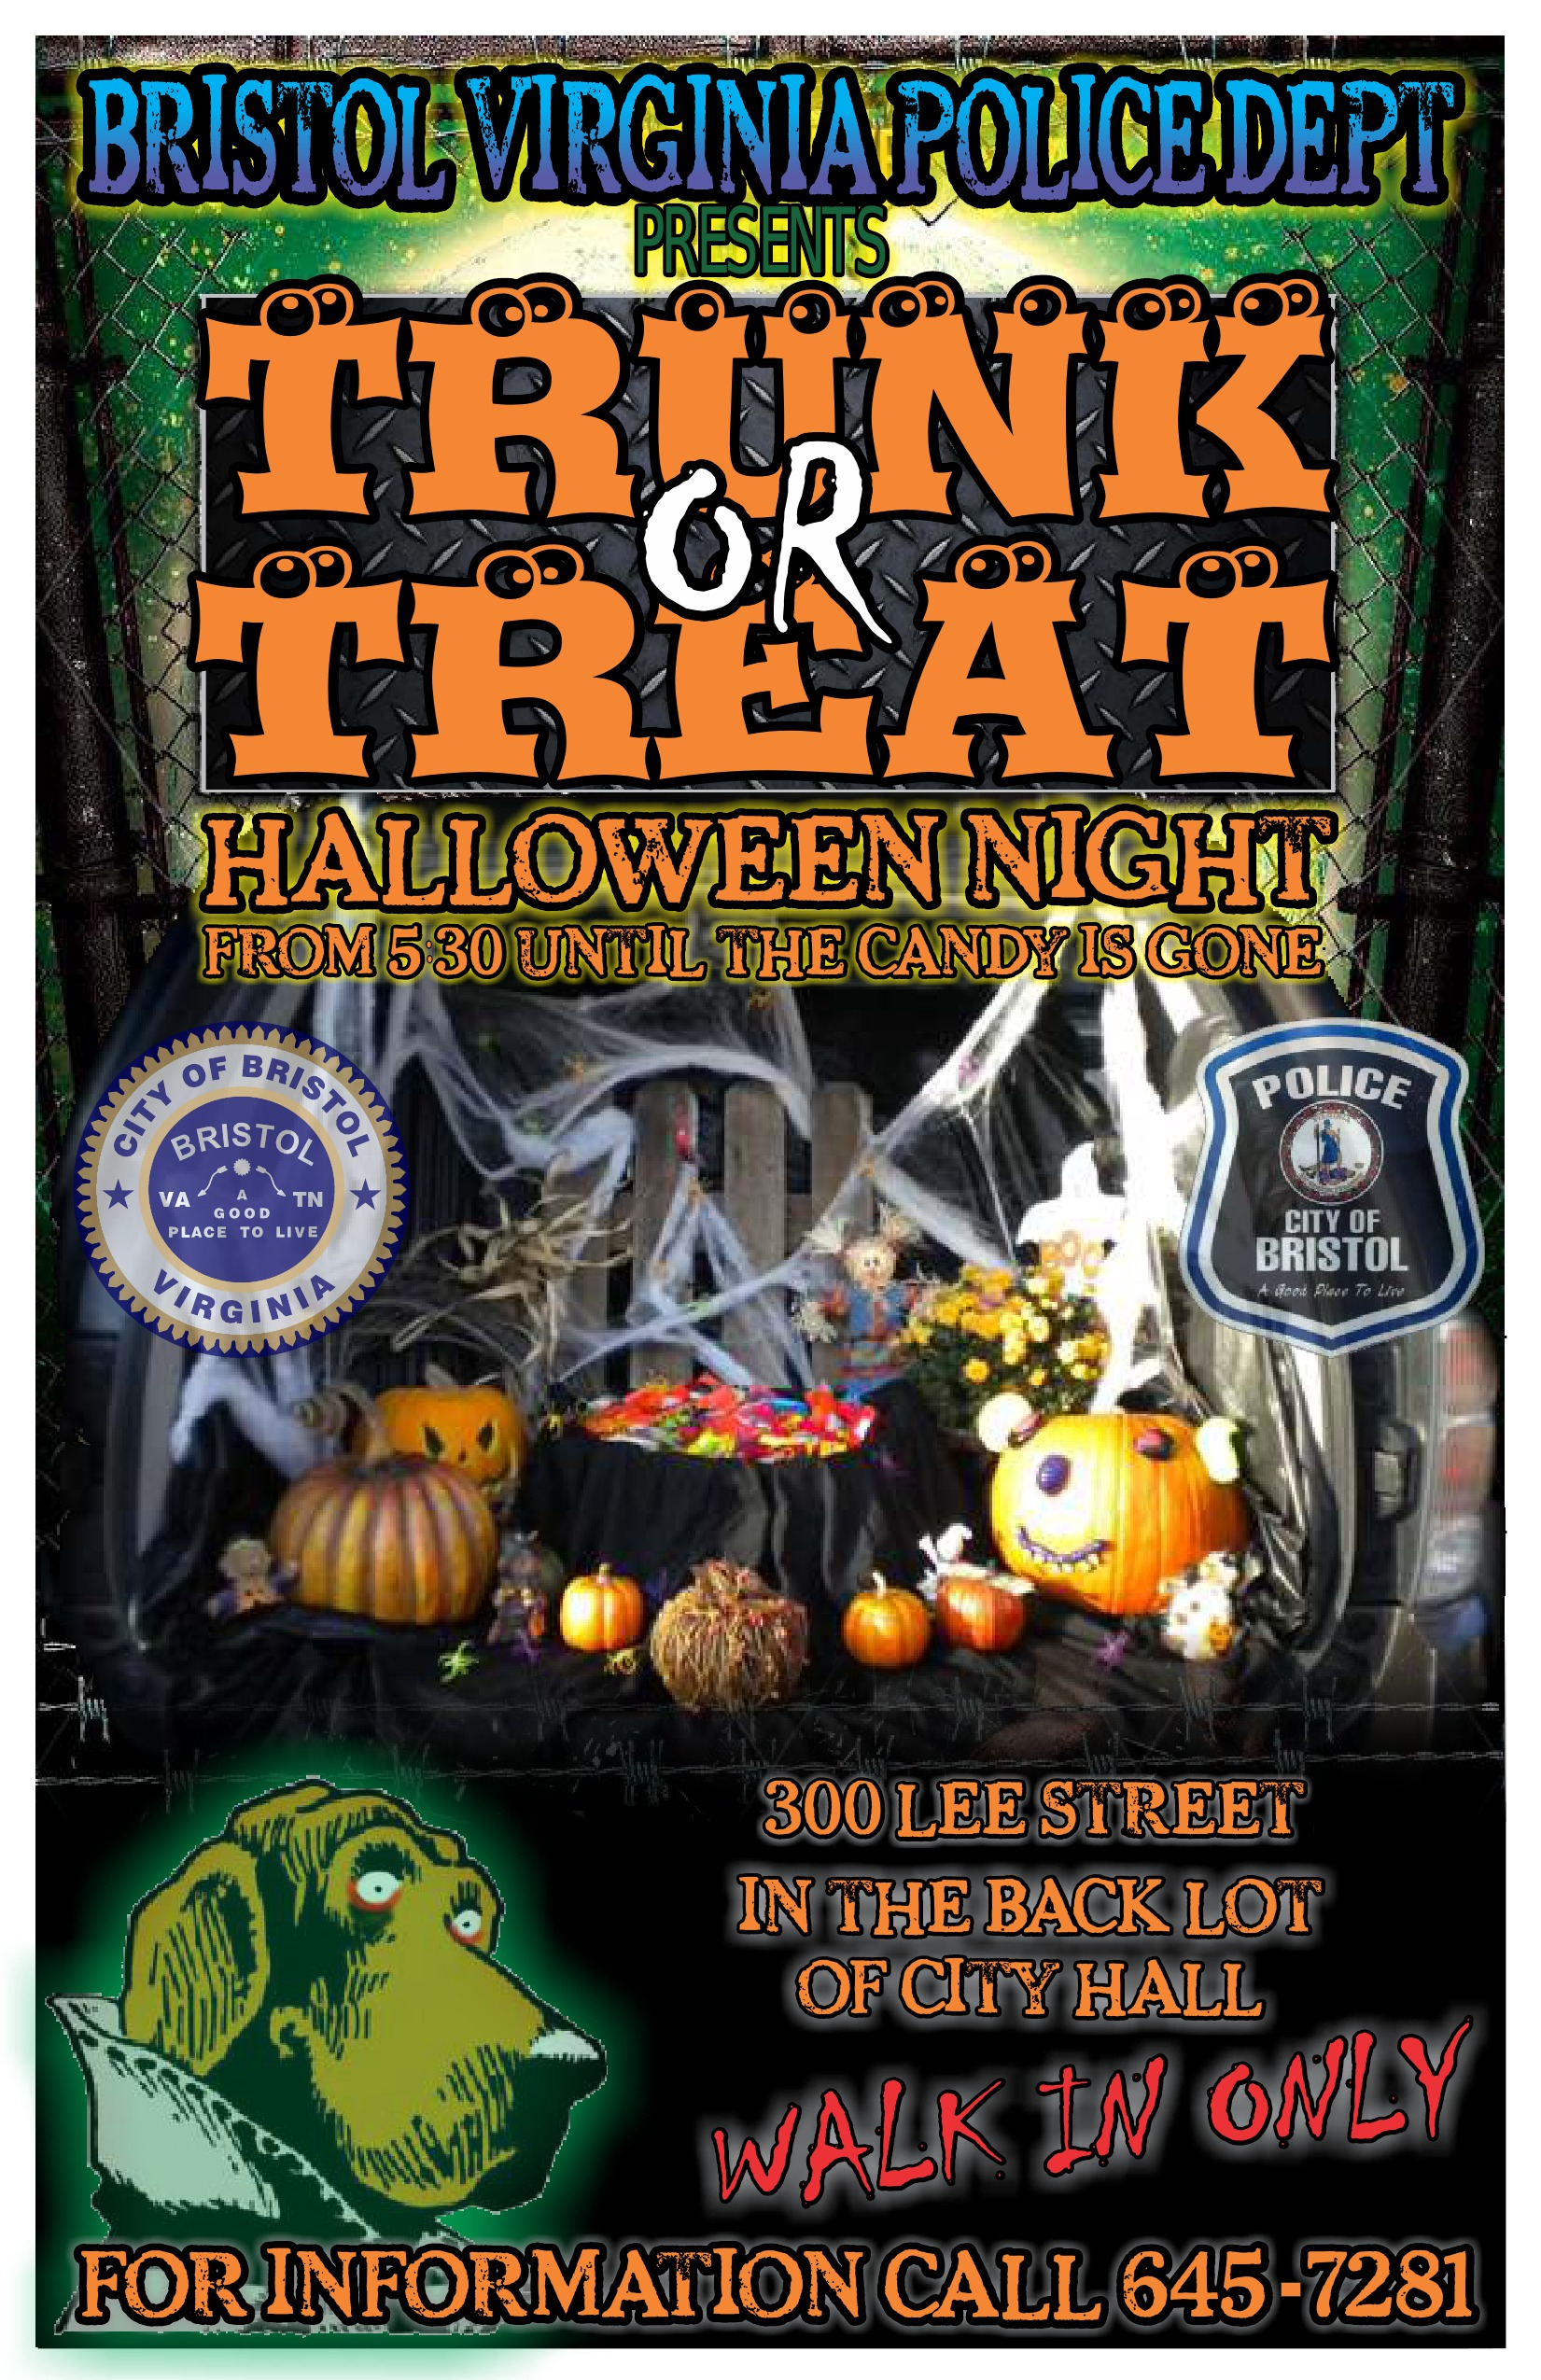 Bristol, Virginia Police Department Trunk or Treat | Downtown ...